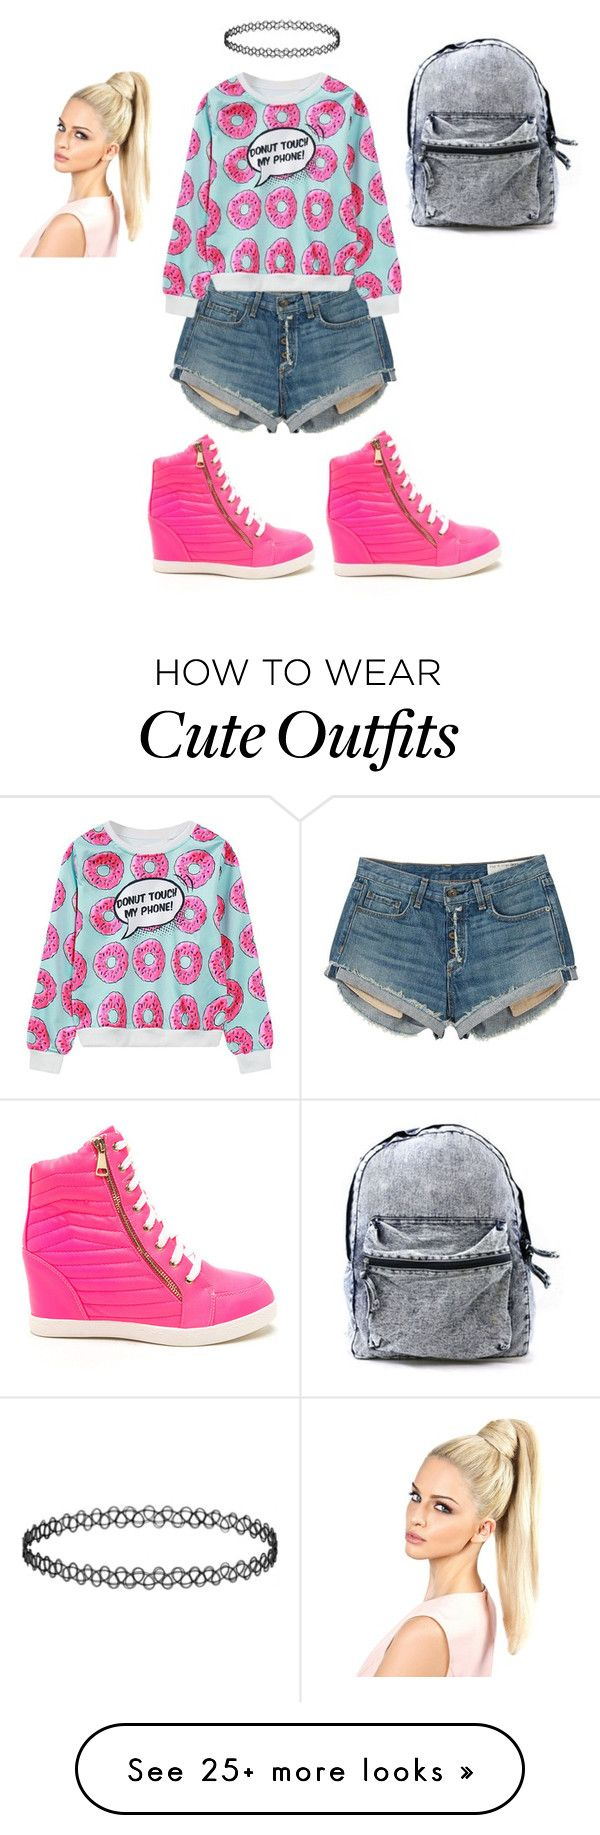 """Another cute school outfit"" by jane888 on Polyvore featuring rag & bone and WithChic"